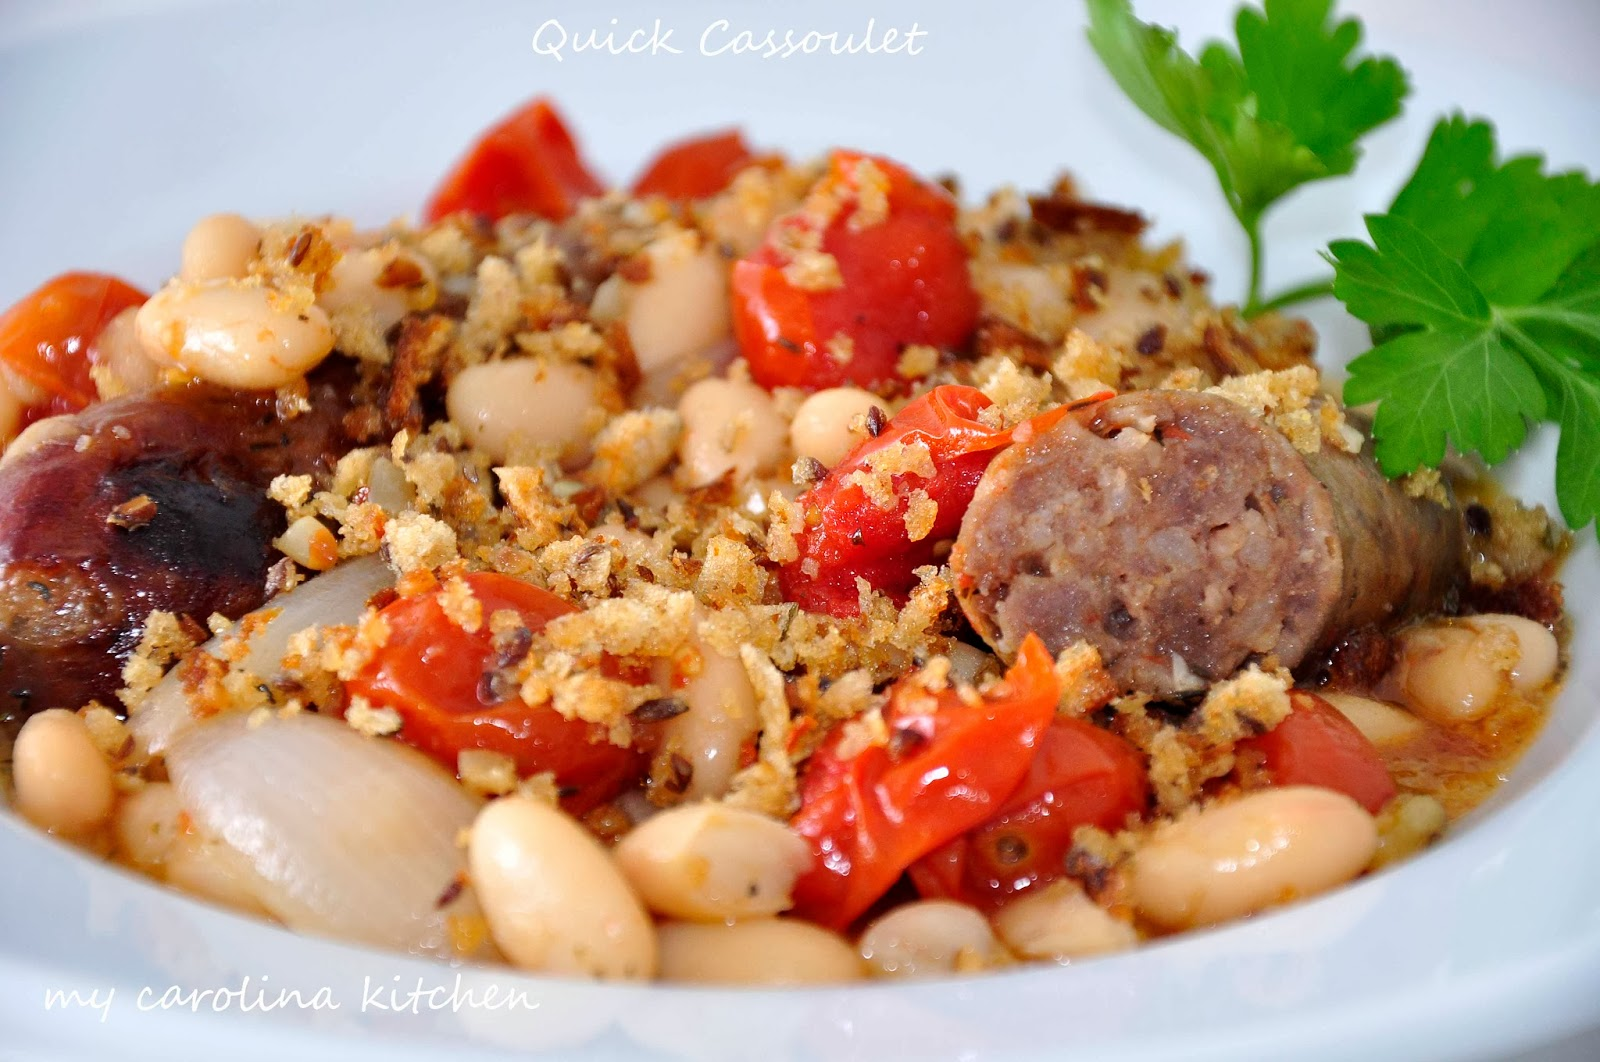 ... Quick French Cassoulet / Sausages and White Beans Cassoulet-Style